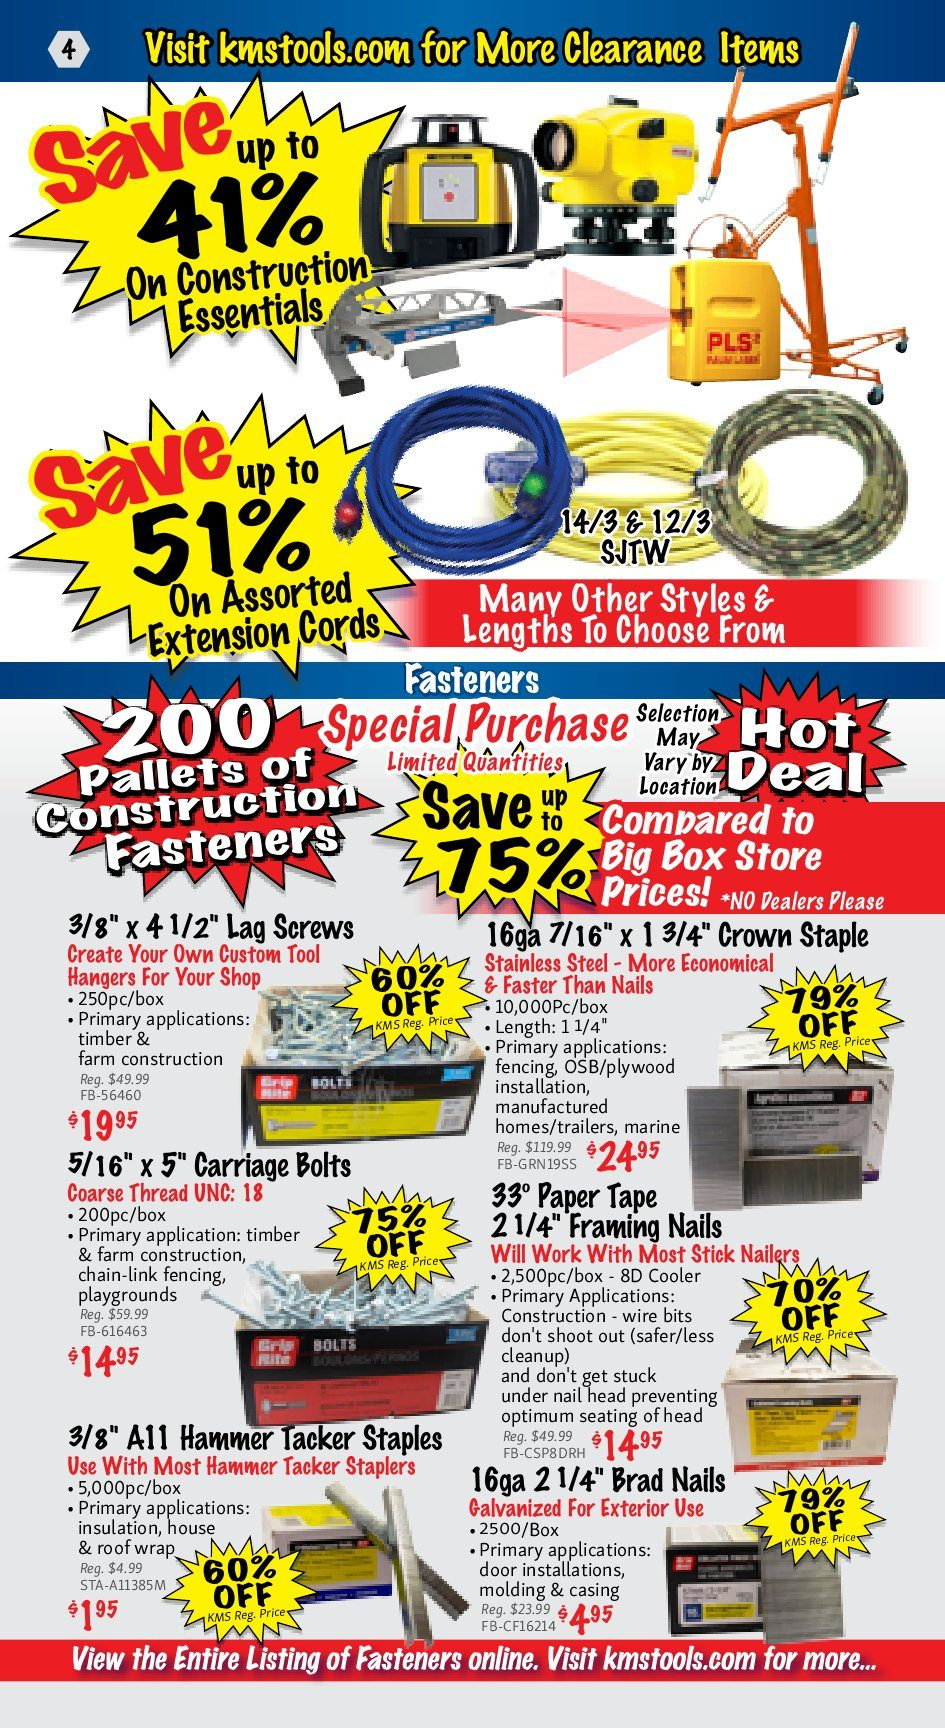 Kms Tools Weekly Flyer January Clearance Hot Deals Sale Jan 1 Use Toggle Switch 20amp Back And Side Wired Singlepole 81200 W 31